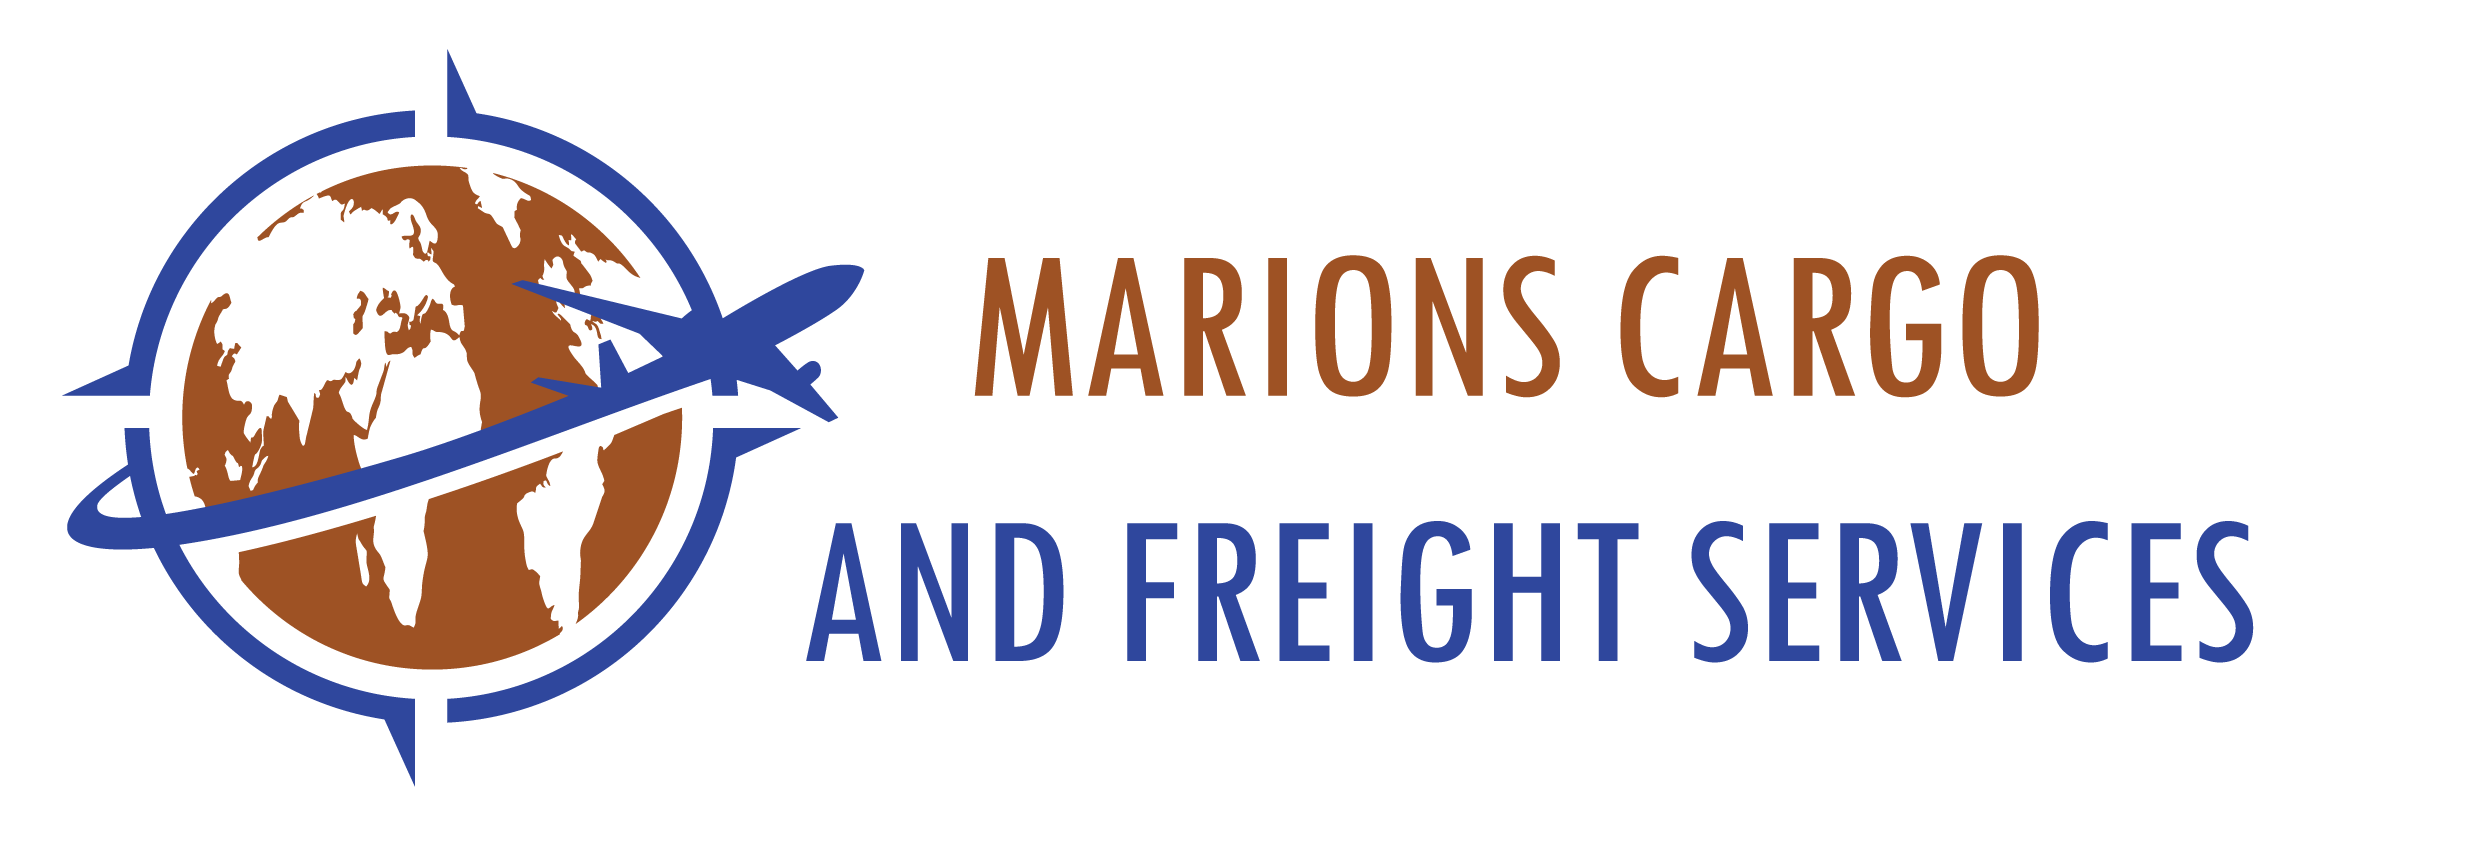 Marions Cargo and Freight